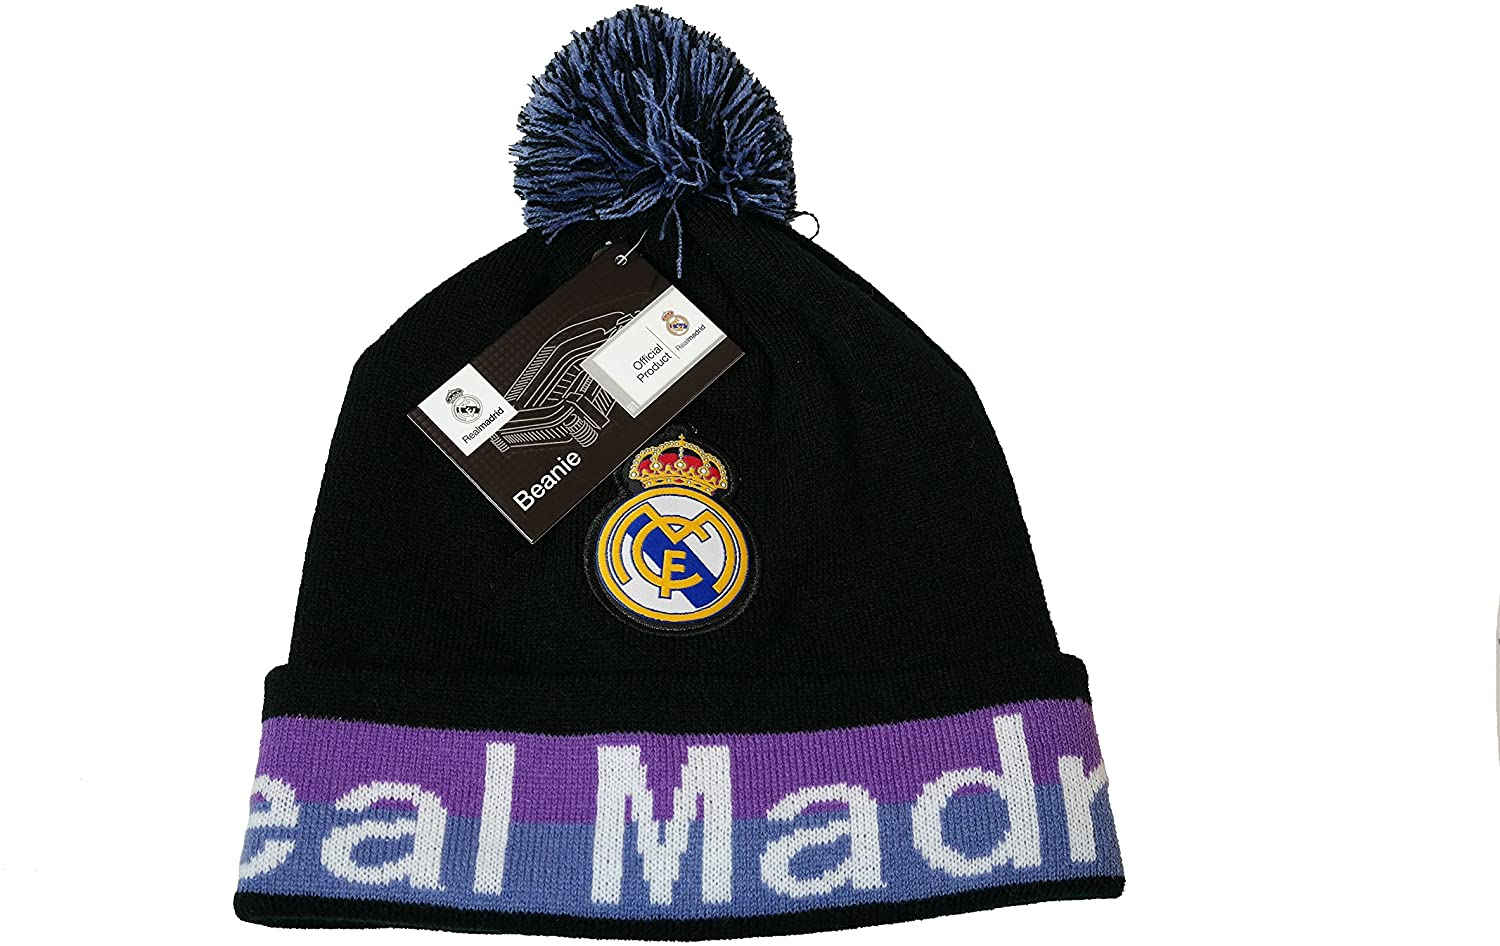 Real Madrid Authentic Official Licensed Product Soccer Beanie